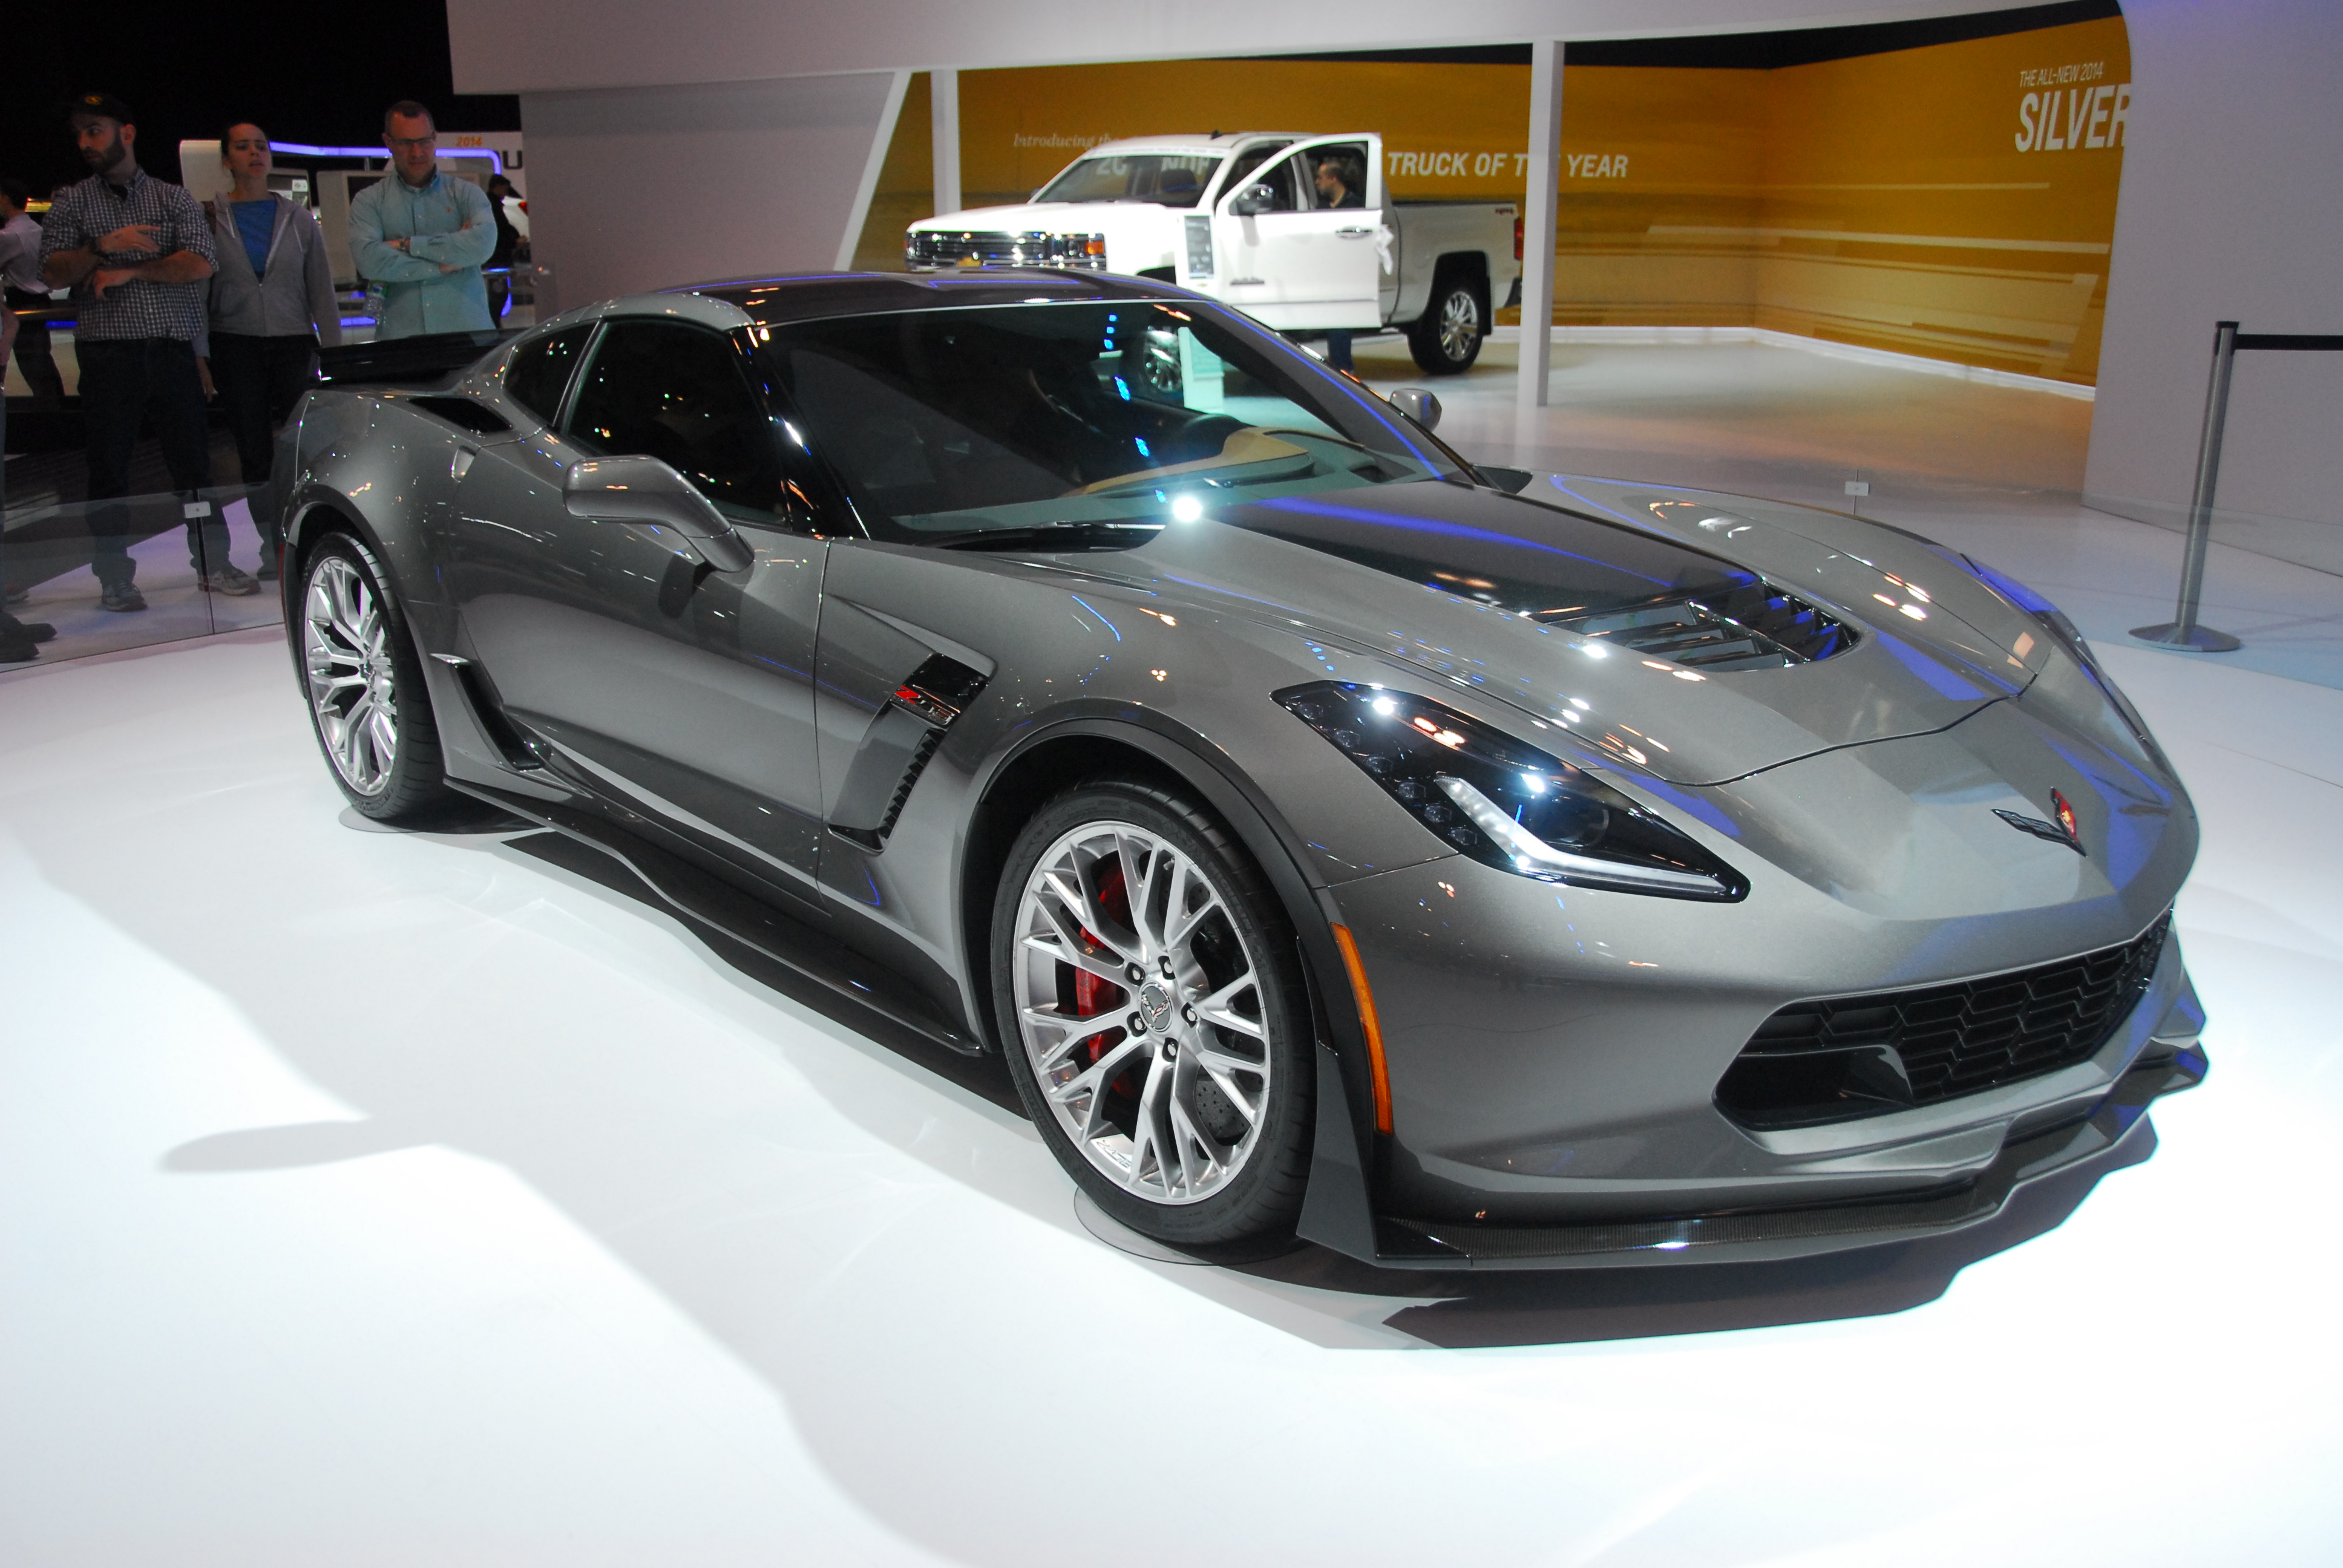 Chevy Offers Corvette Owners Incentive to Buy Another ...